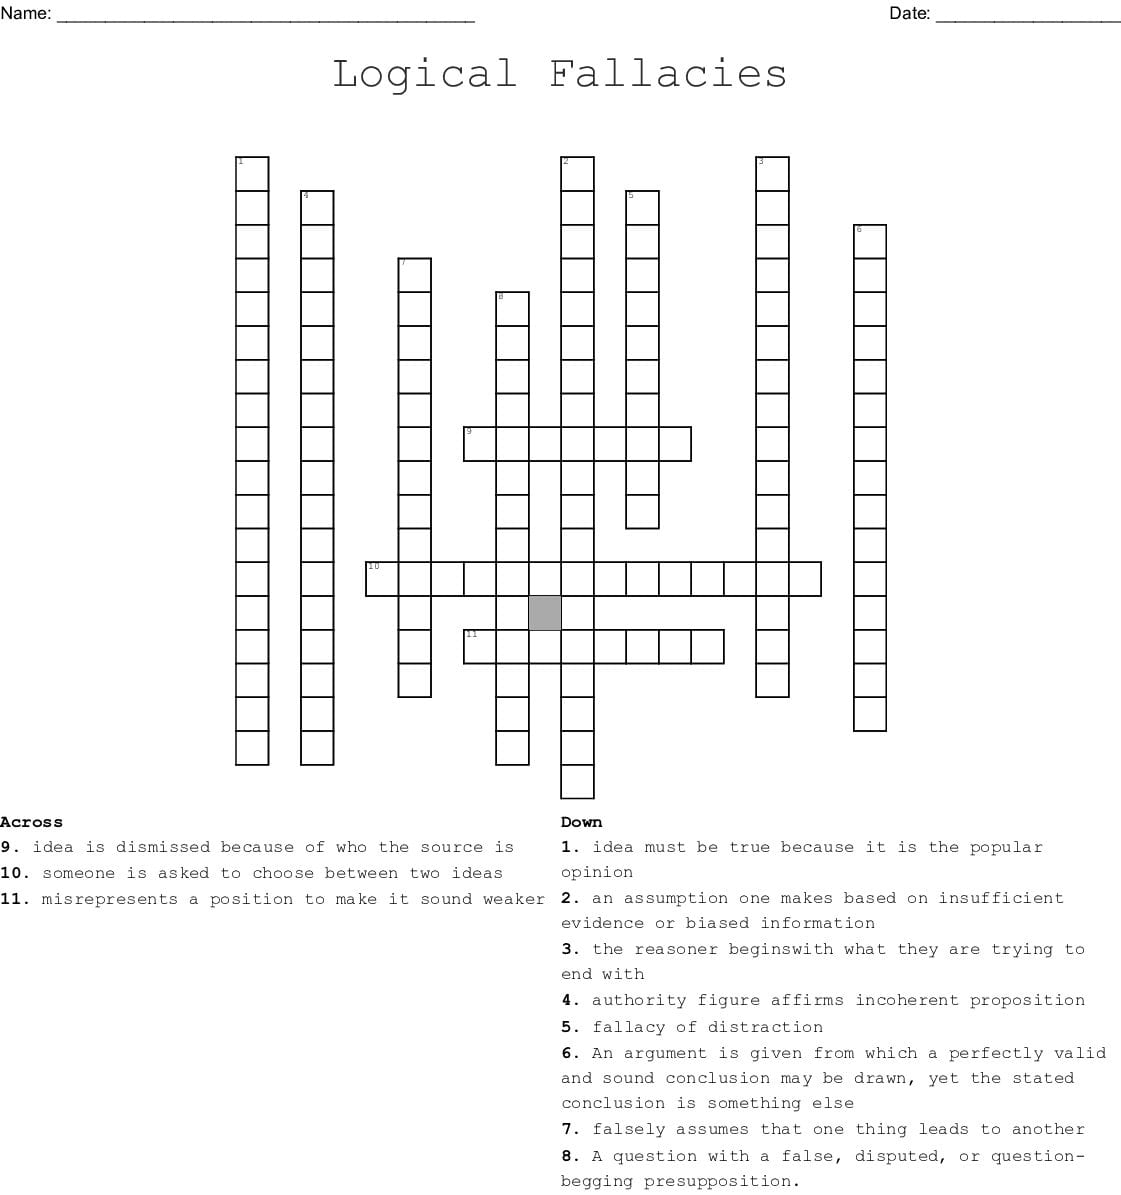 Logical Fallacies Worksheet With Answers